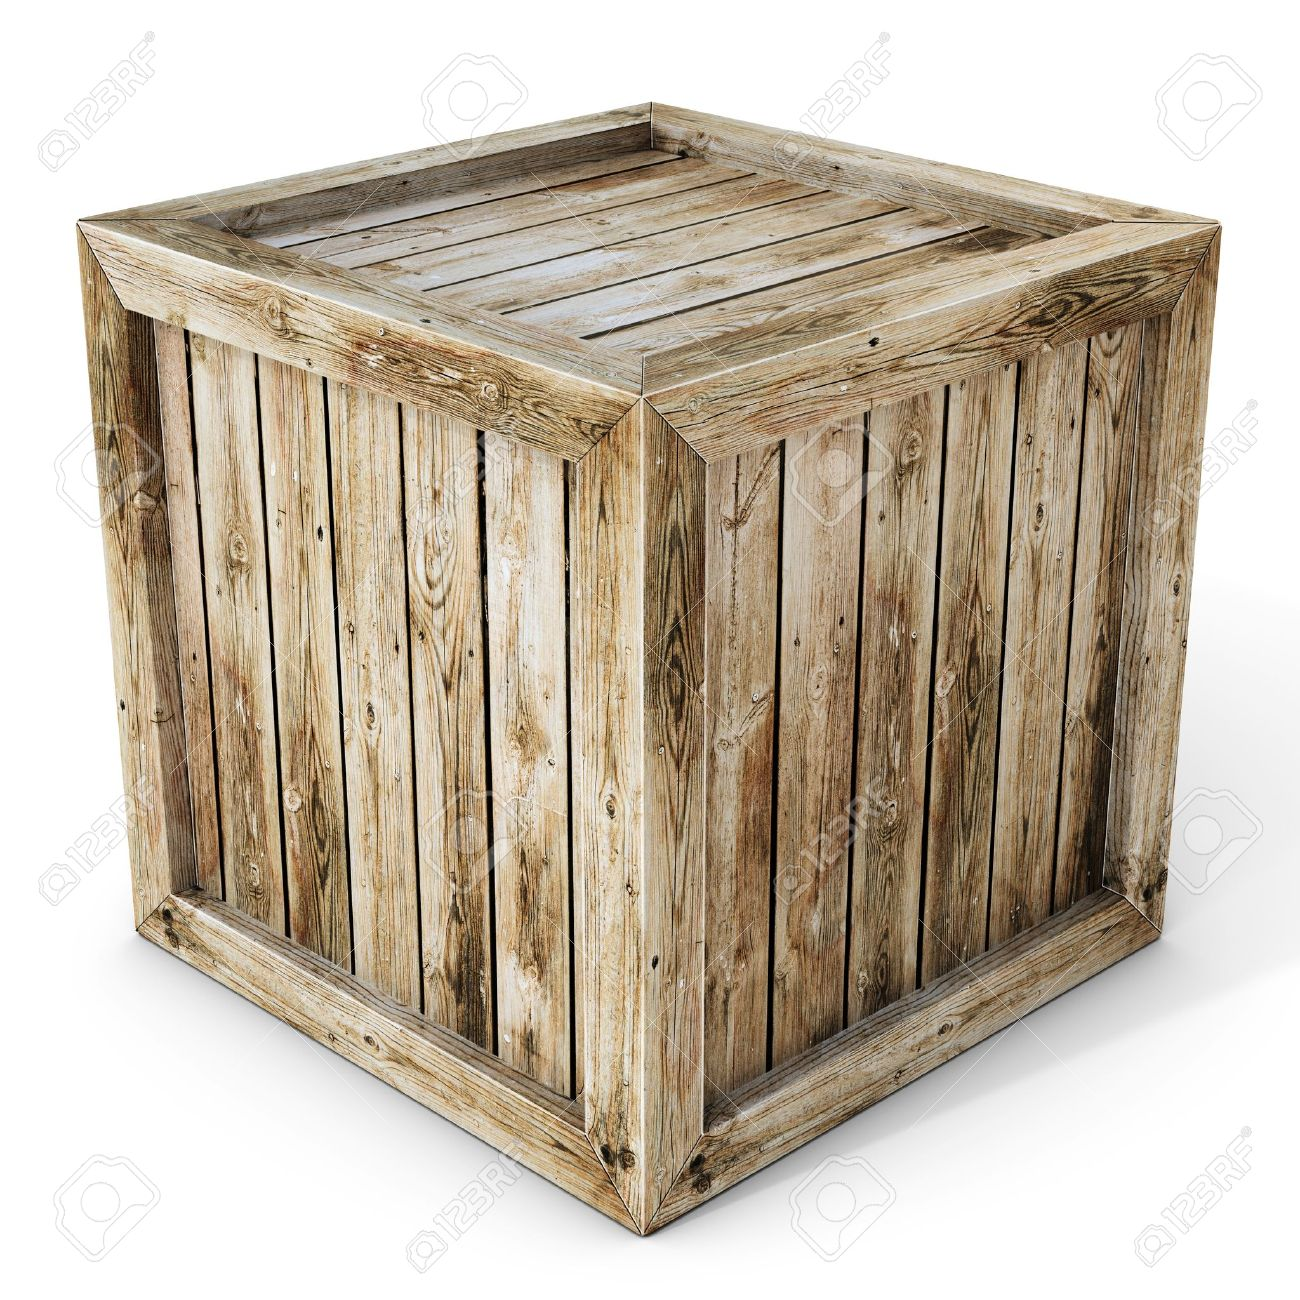 3d Old Wooden Crate On White Background Stock Photo   50232830 Part 4